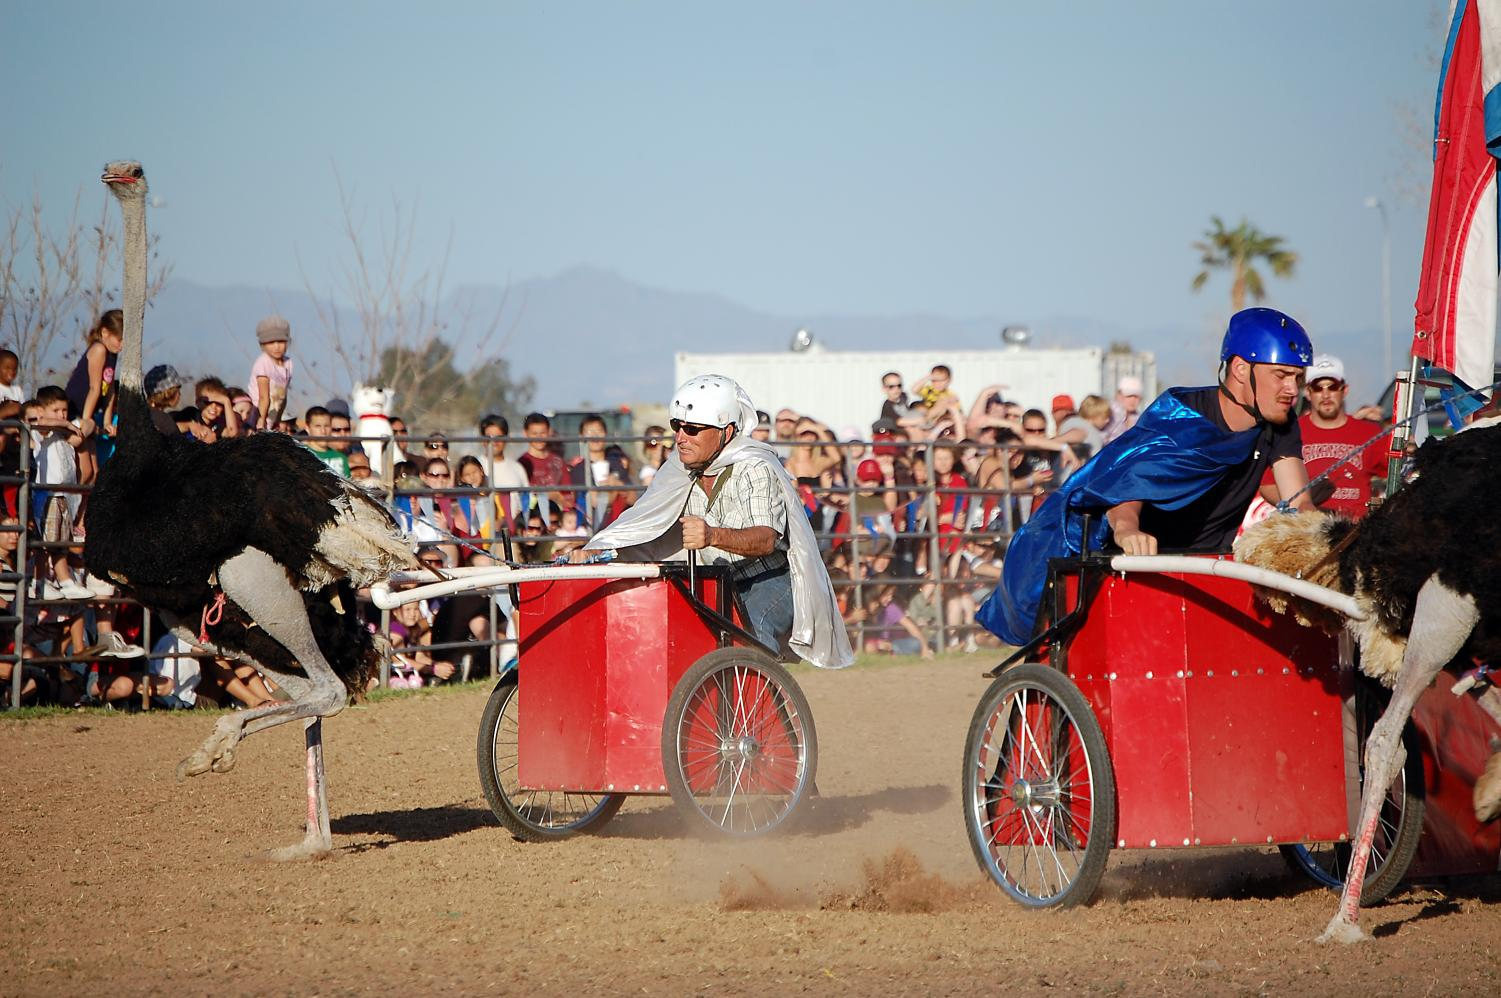 Picture of one of the many activities to view at the Ostrich Festival